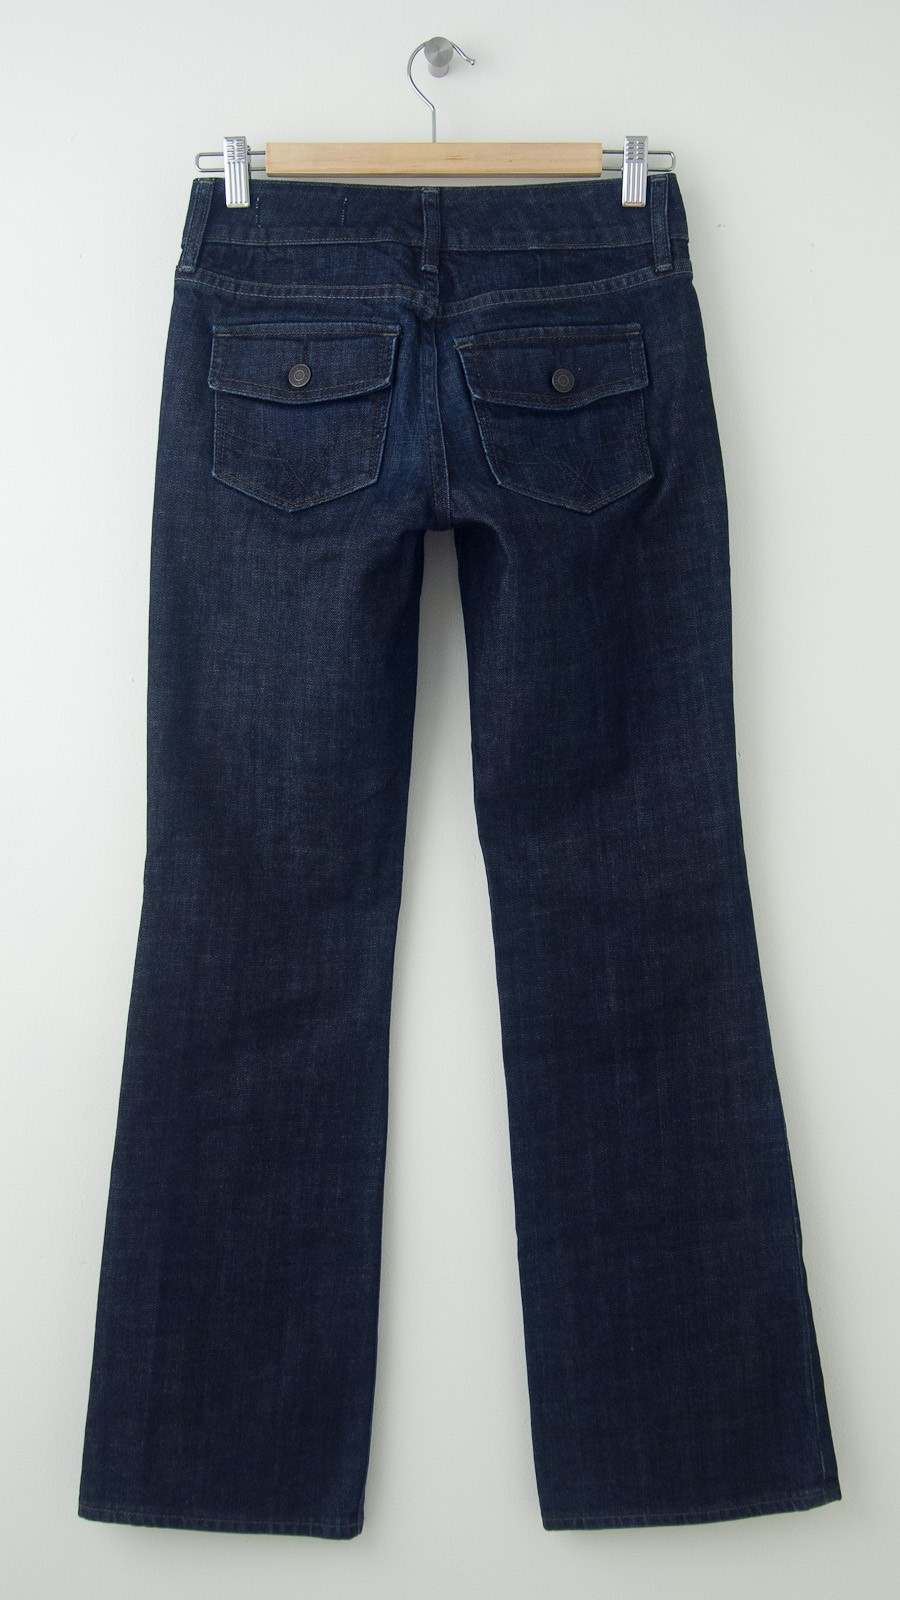 Gap Curvy Jeans Women S 0r Regular